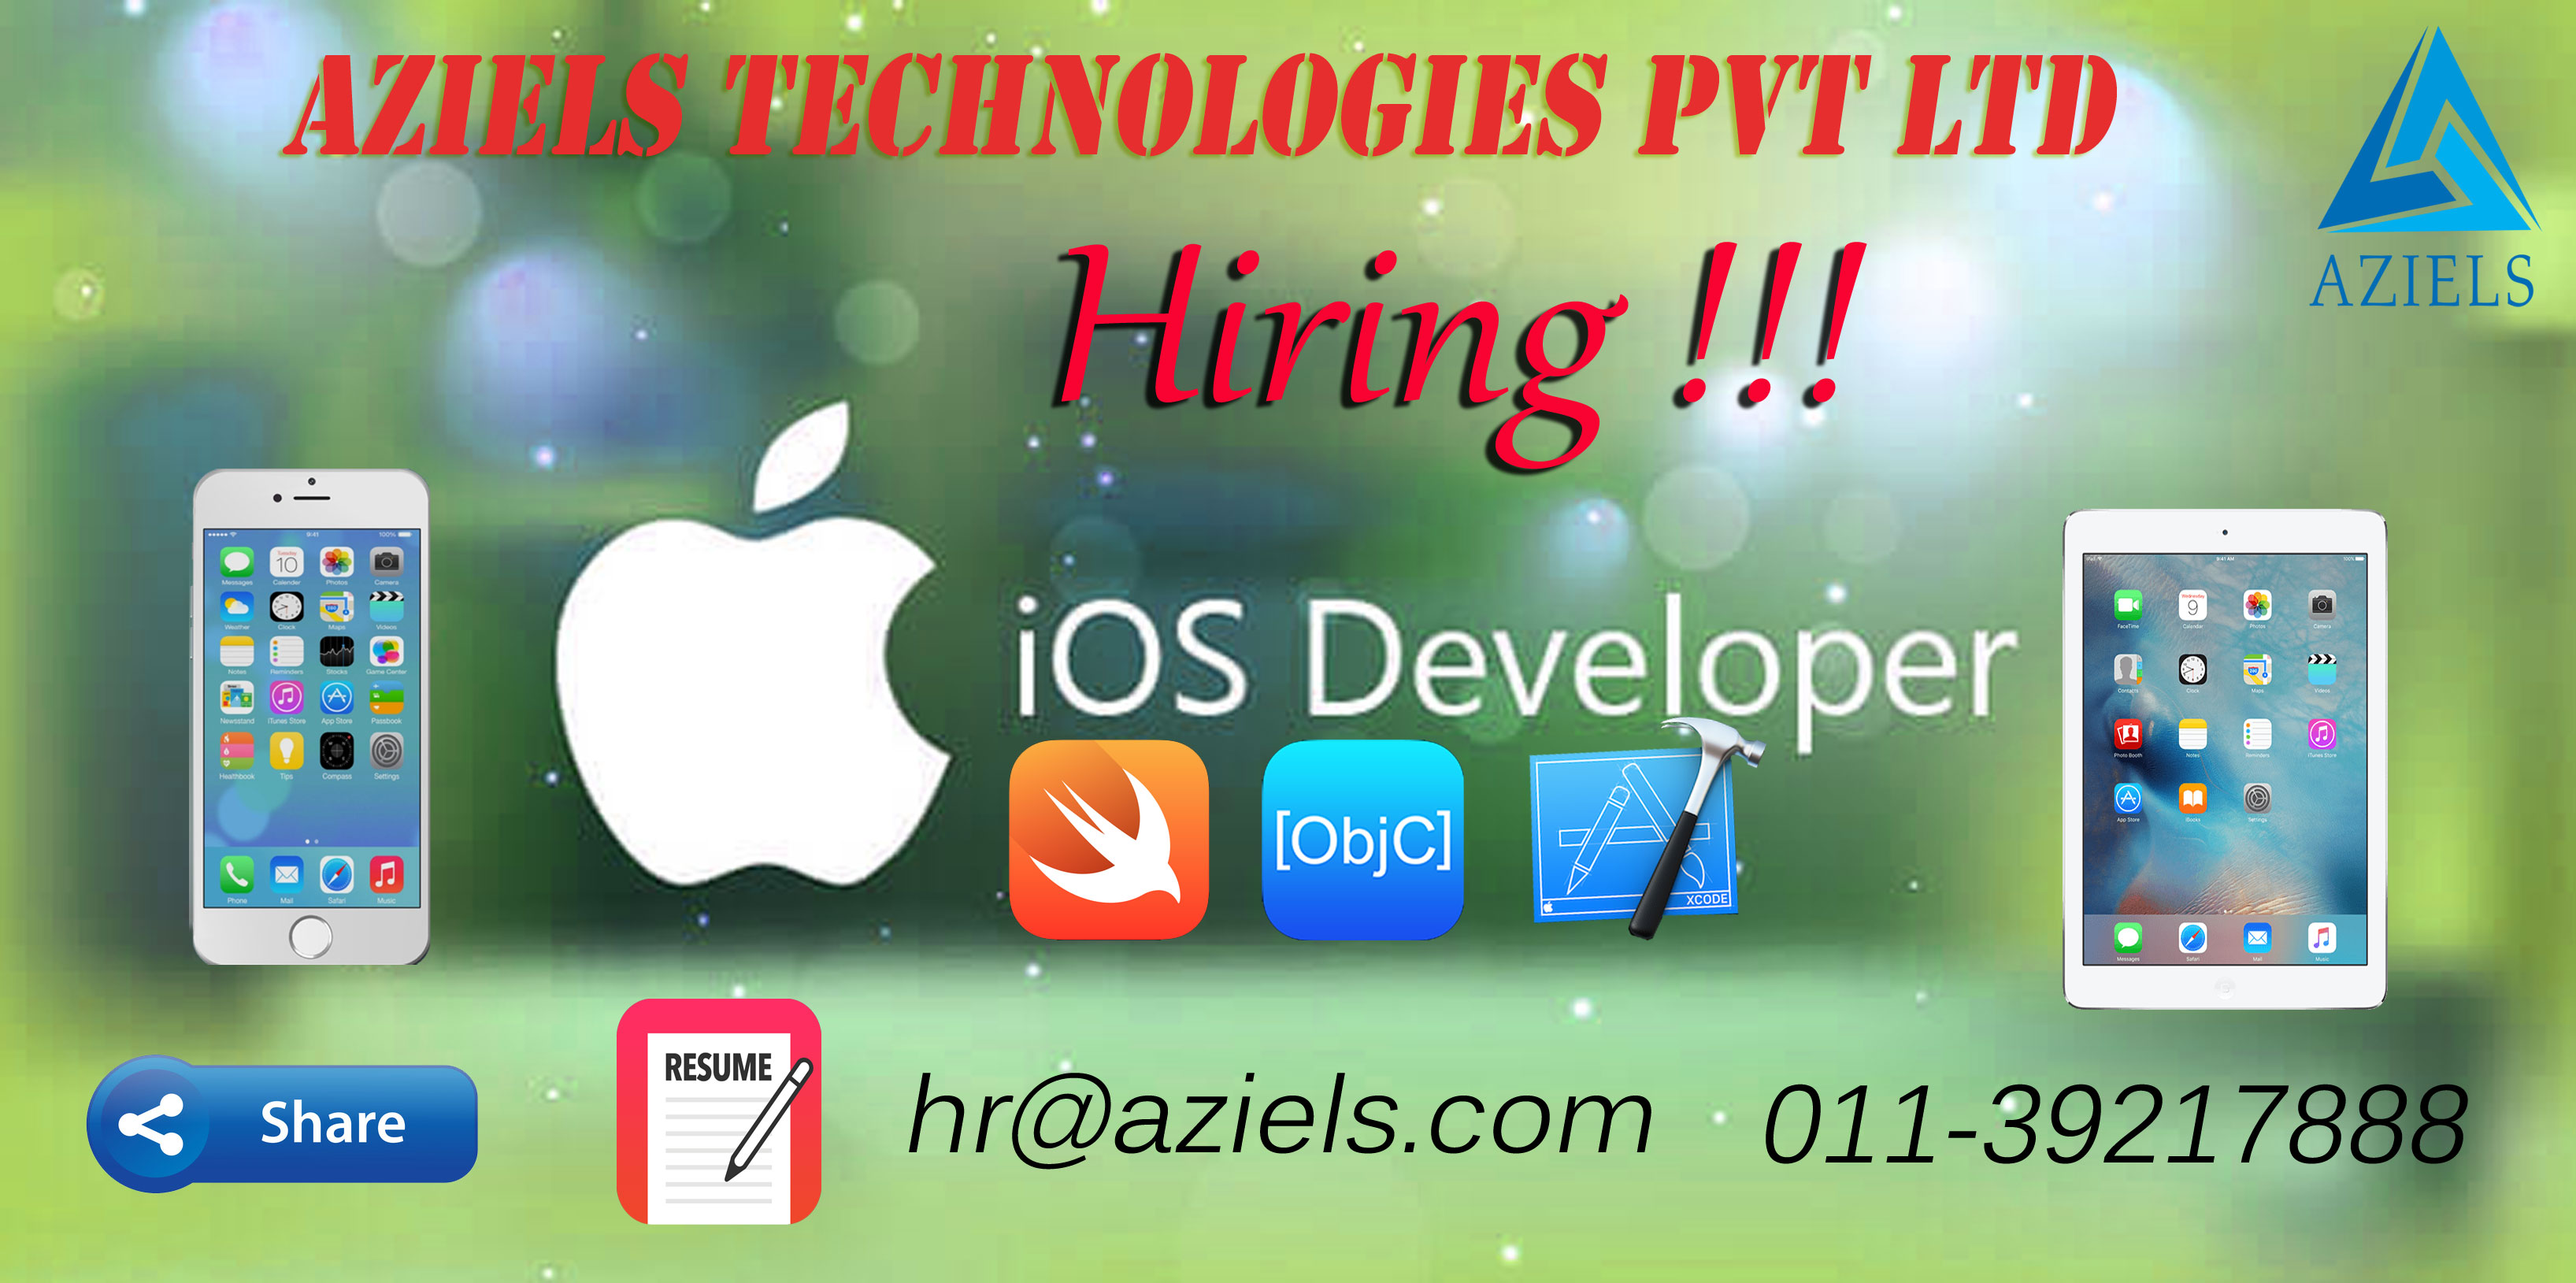 Aziels-Technolgies-hiring-Ios-Developers